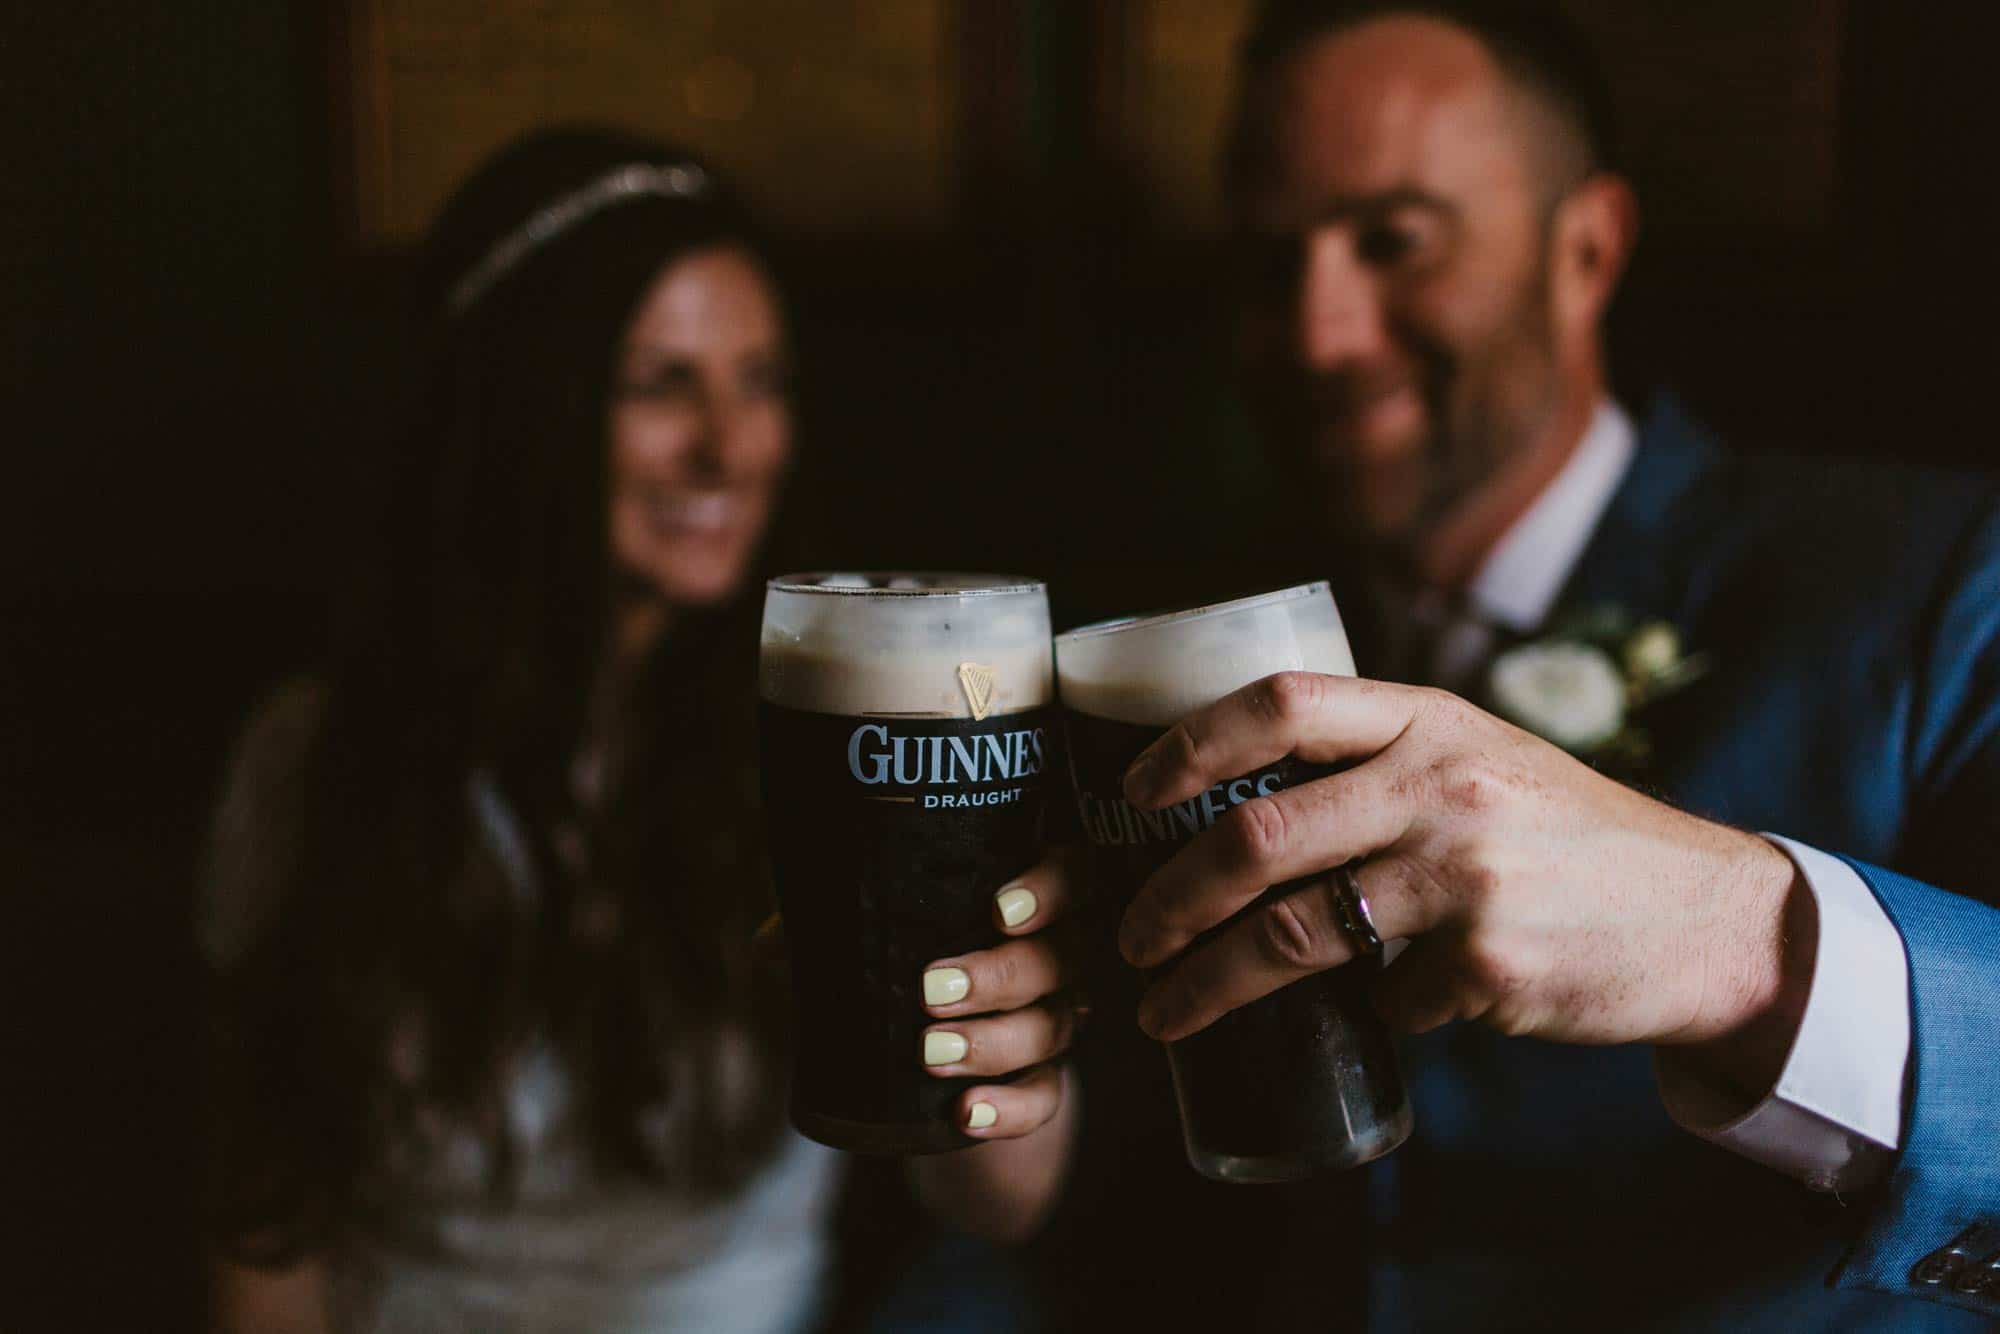 Elopement videographer Ireland, couple drinking Guinness